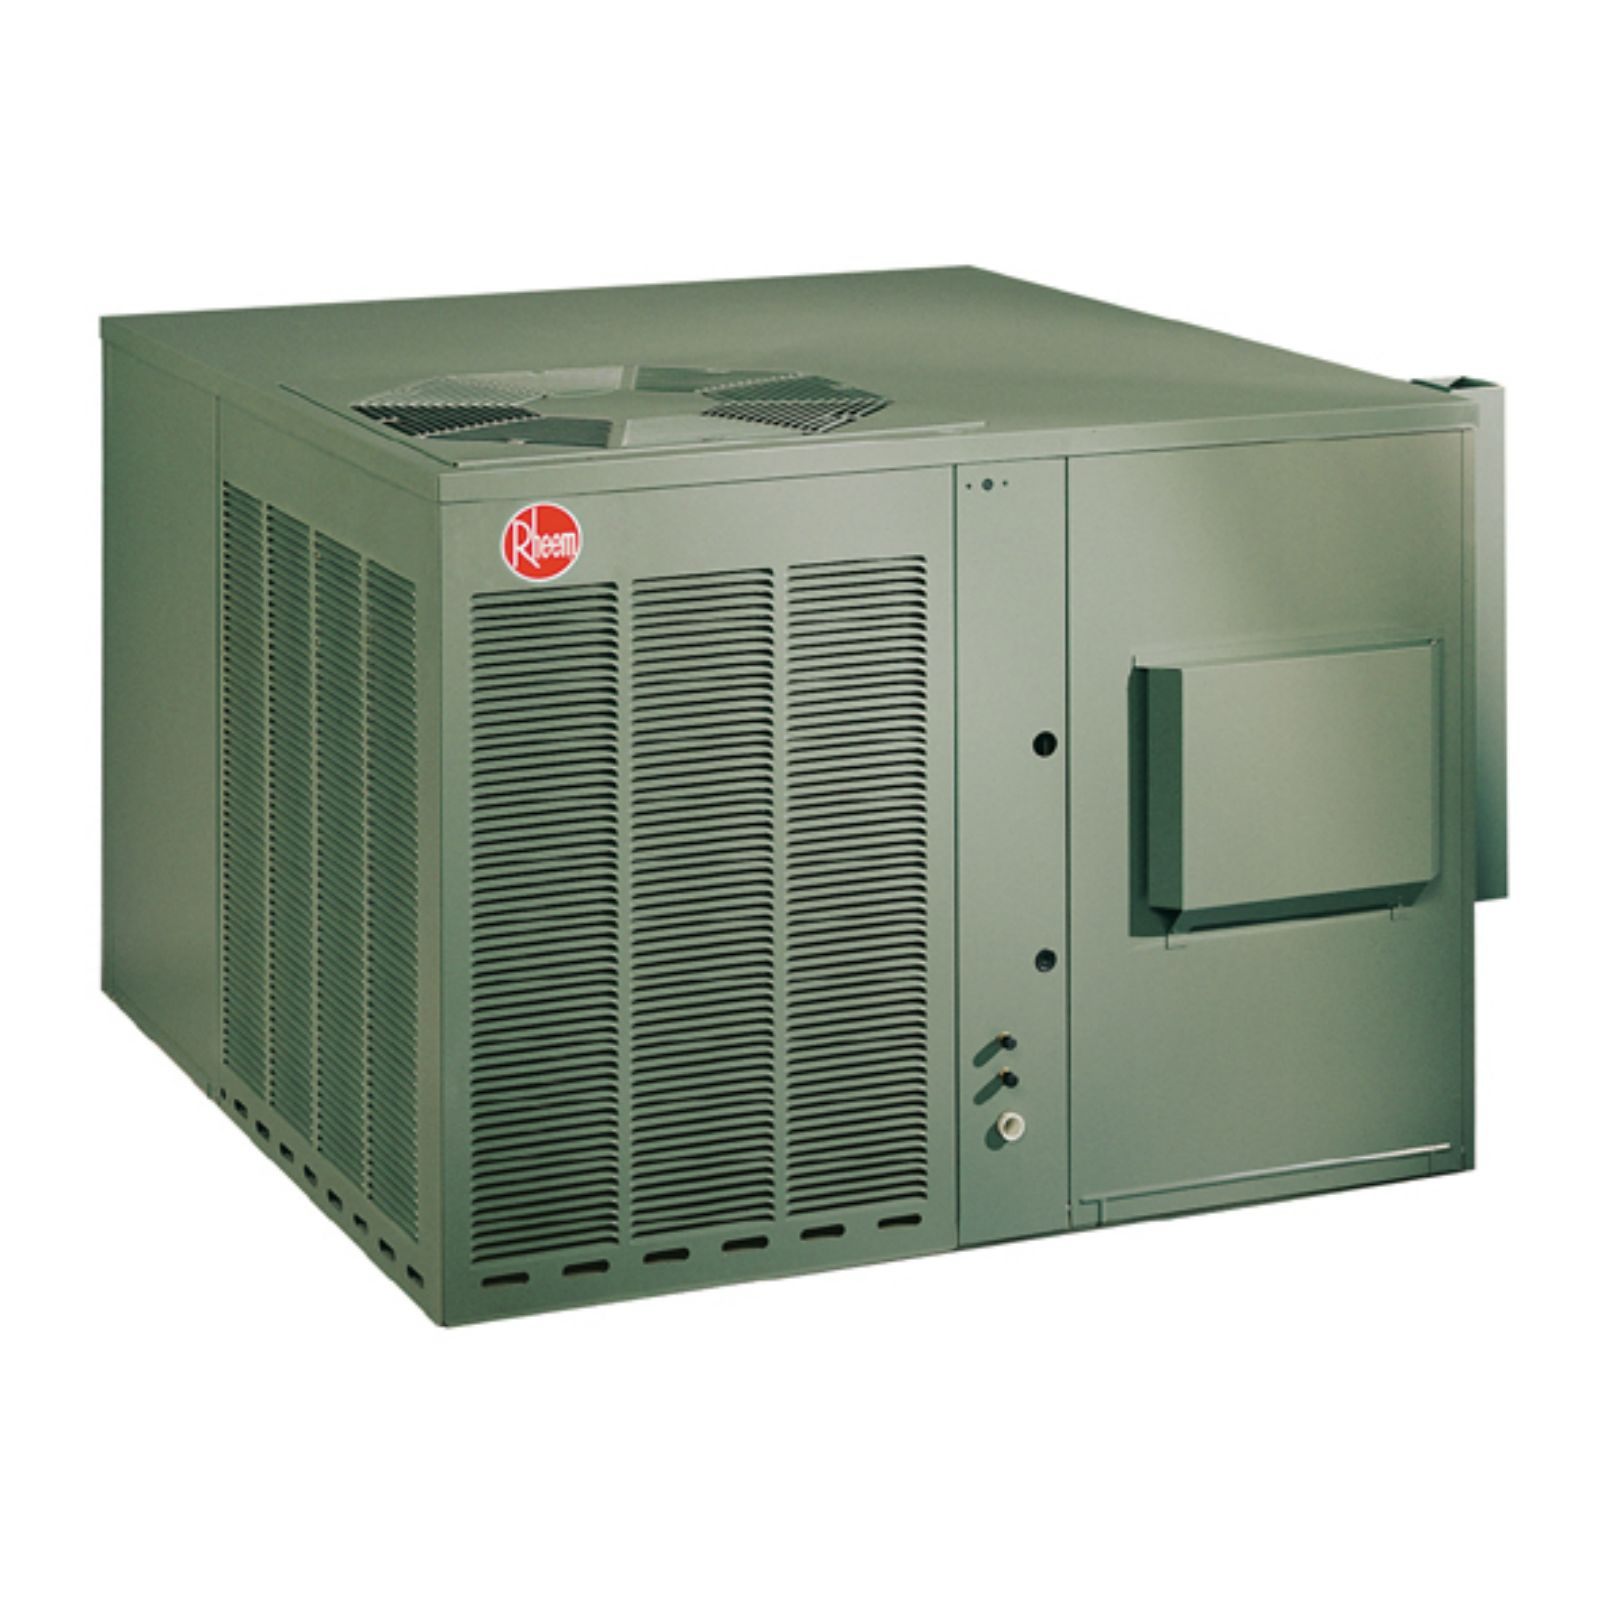 Rheem RRNA-C060JK10X - Classic Series 5 Ton, 13 SEER, R22, Rooftop Packaged  Gas/Electric Unit, NOx, 100K BTU/H, 208-230/1/60